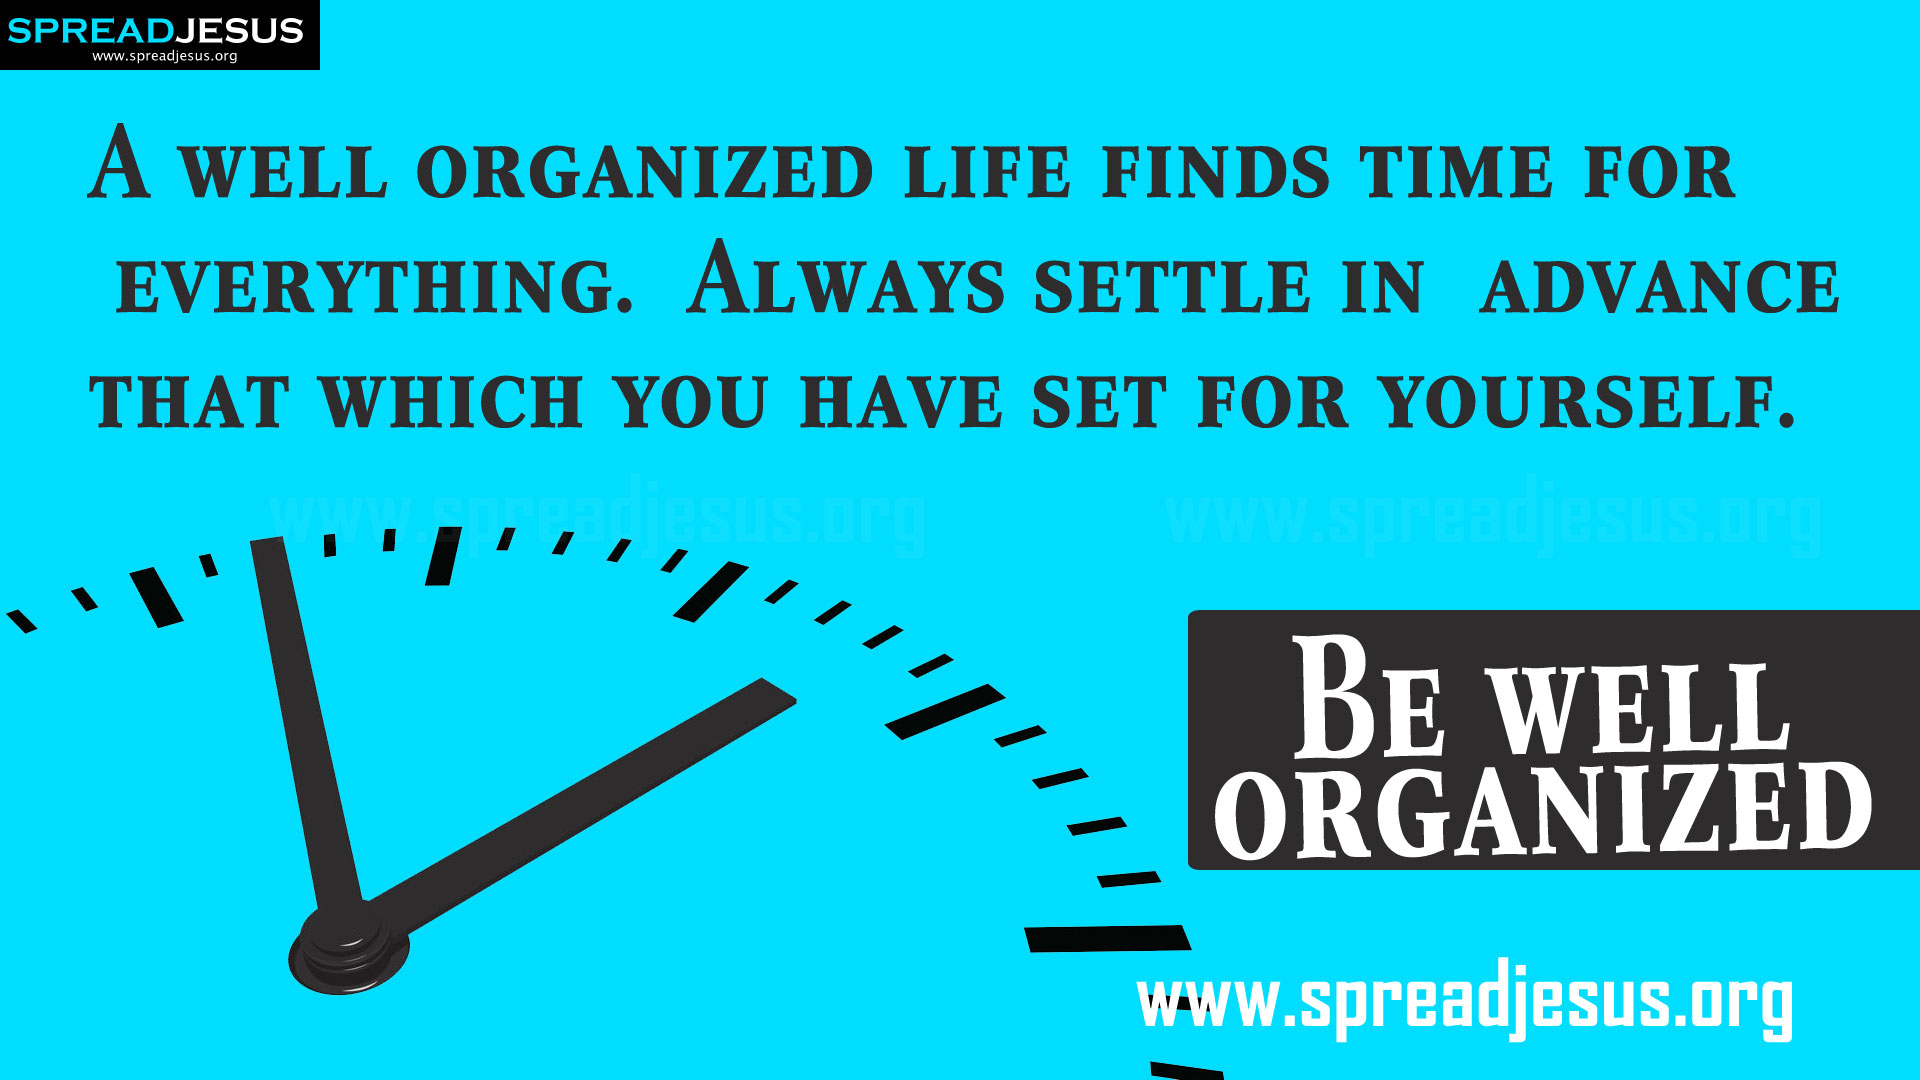 TIME MANAGEMENT QUOTES HD-WALLPAPERS FREE DOWNLOAD Be well organized — A well organized life finds time for everything.